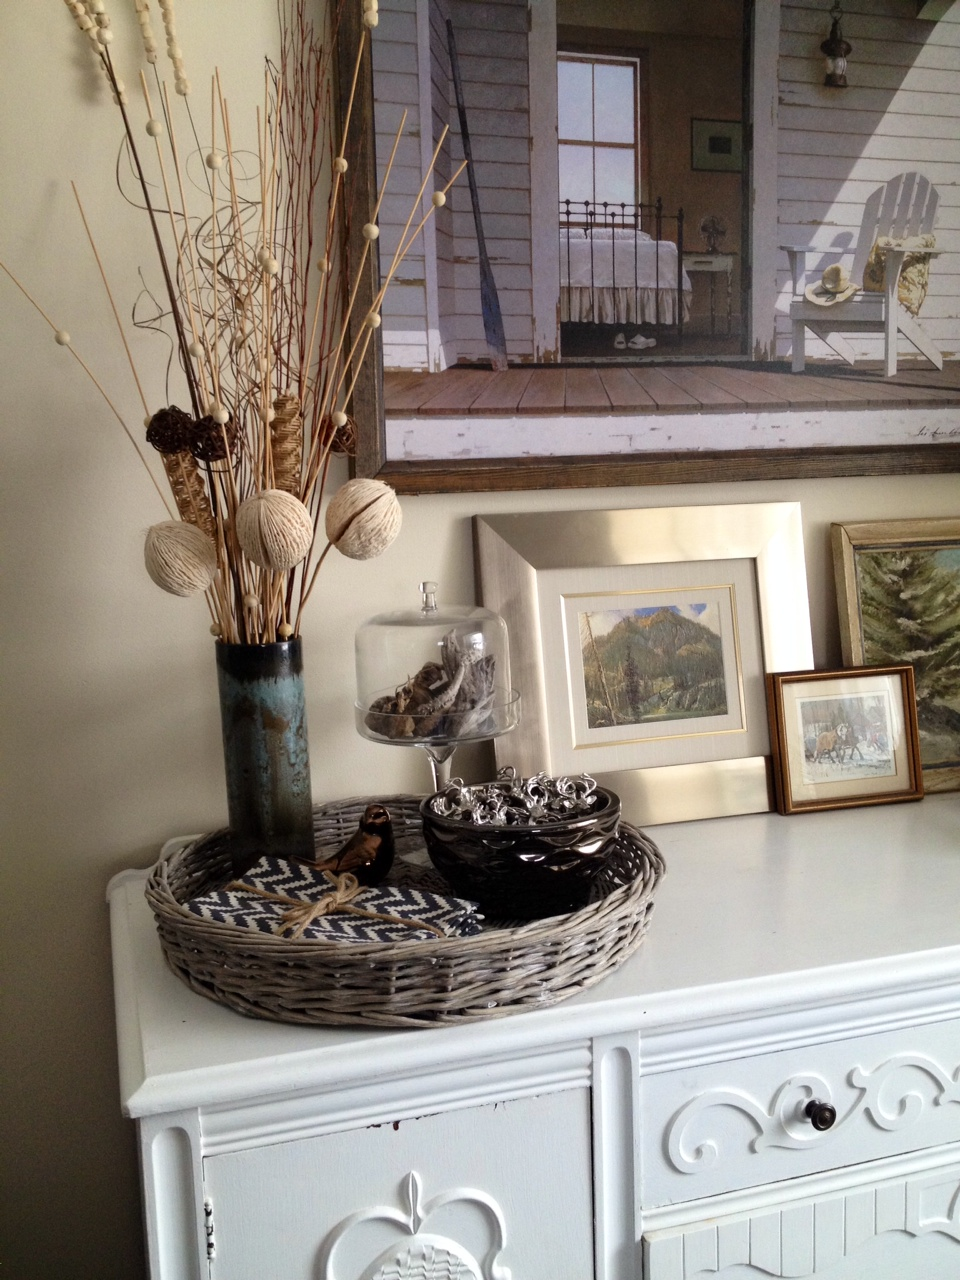 Wicker Tray, Vase with Rustic Elements, Napkins, Glass Cloche, Metallic Bowl, Copper Bird